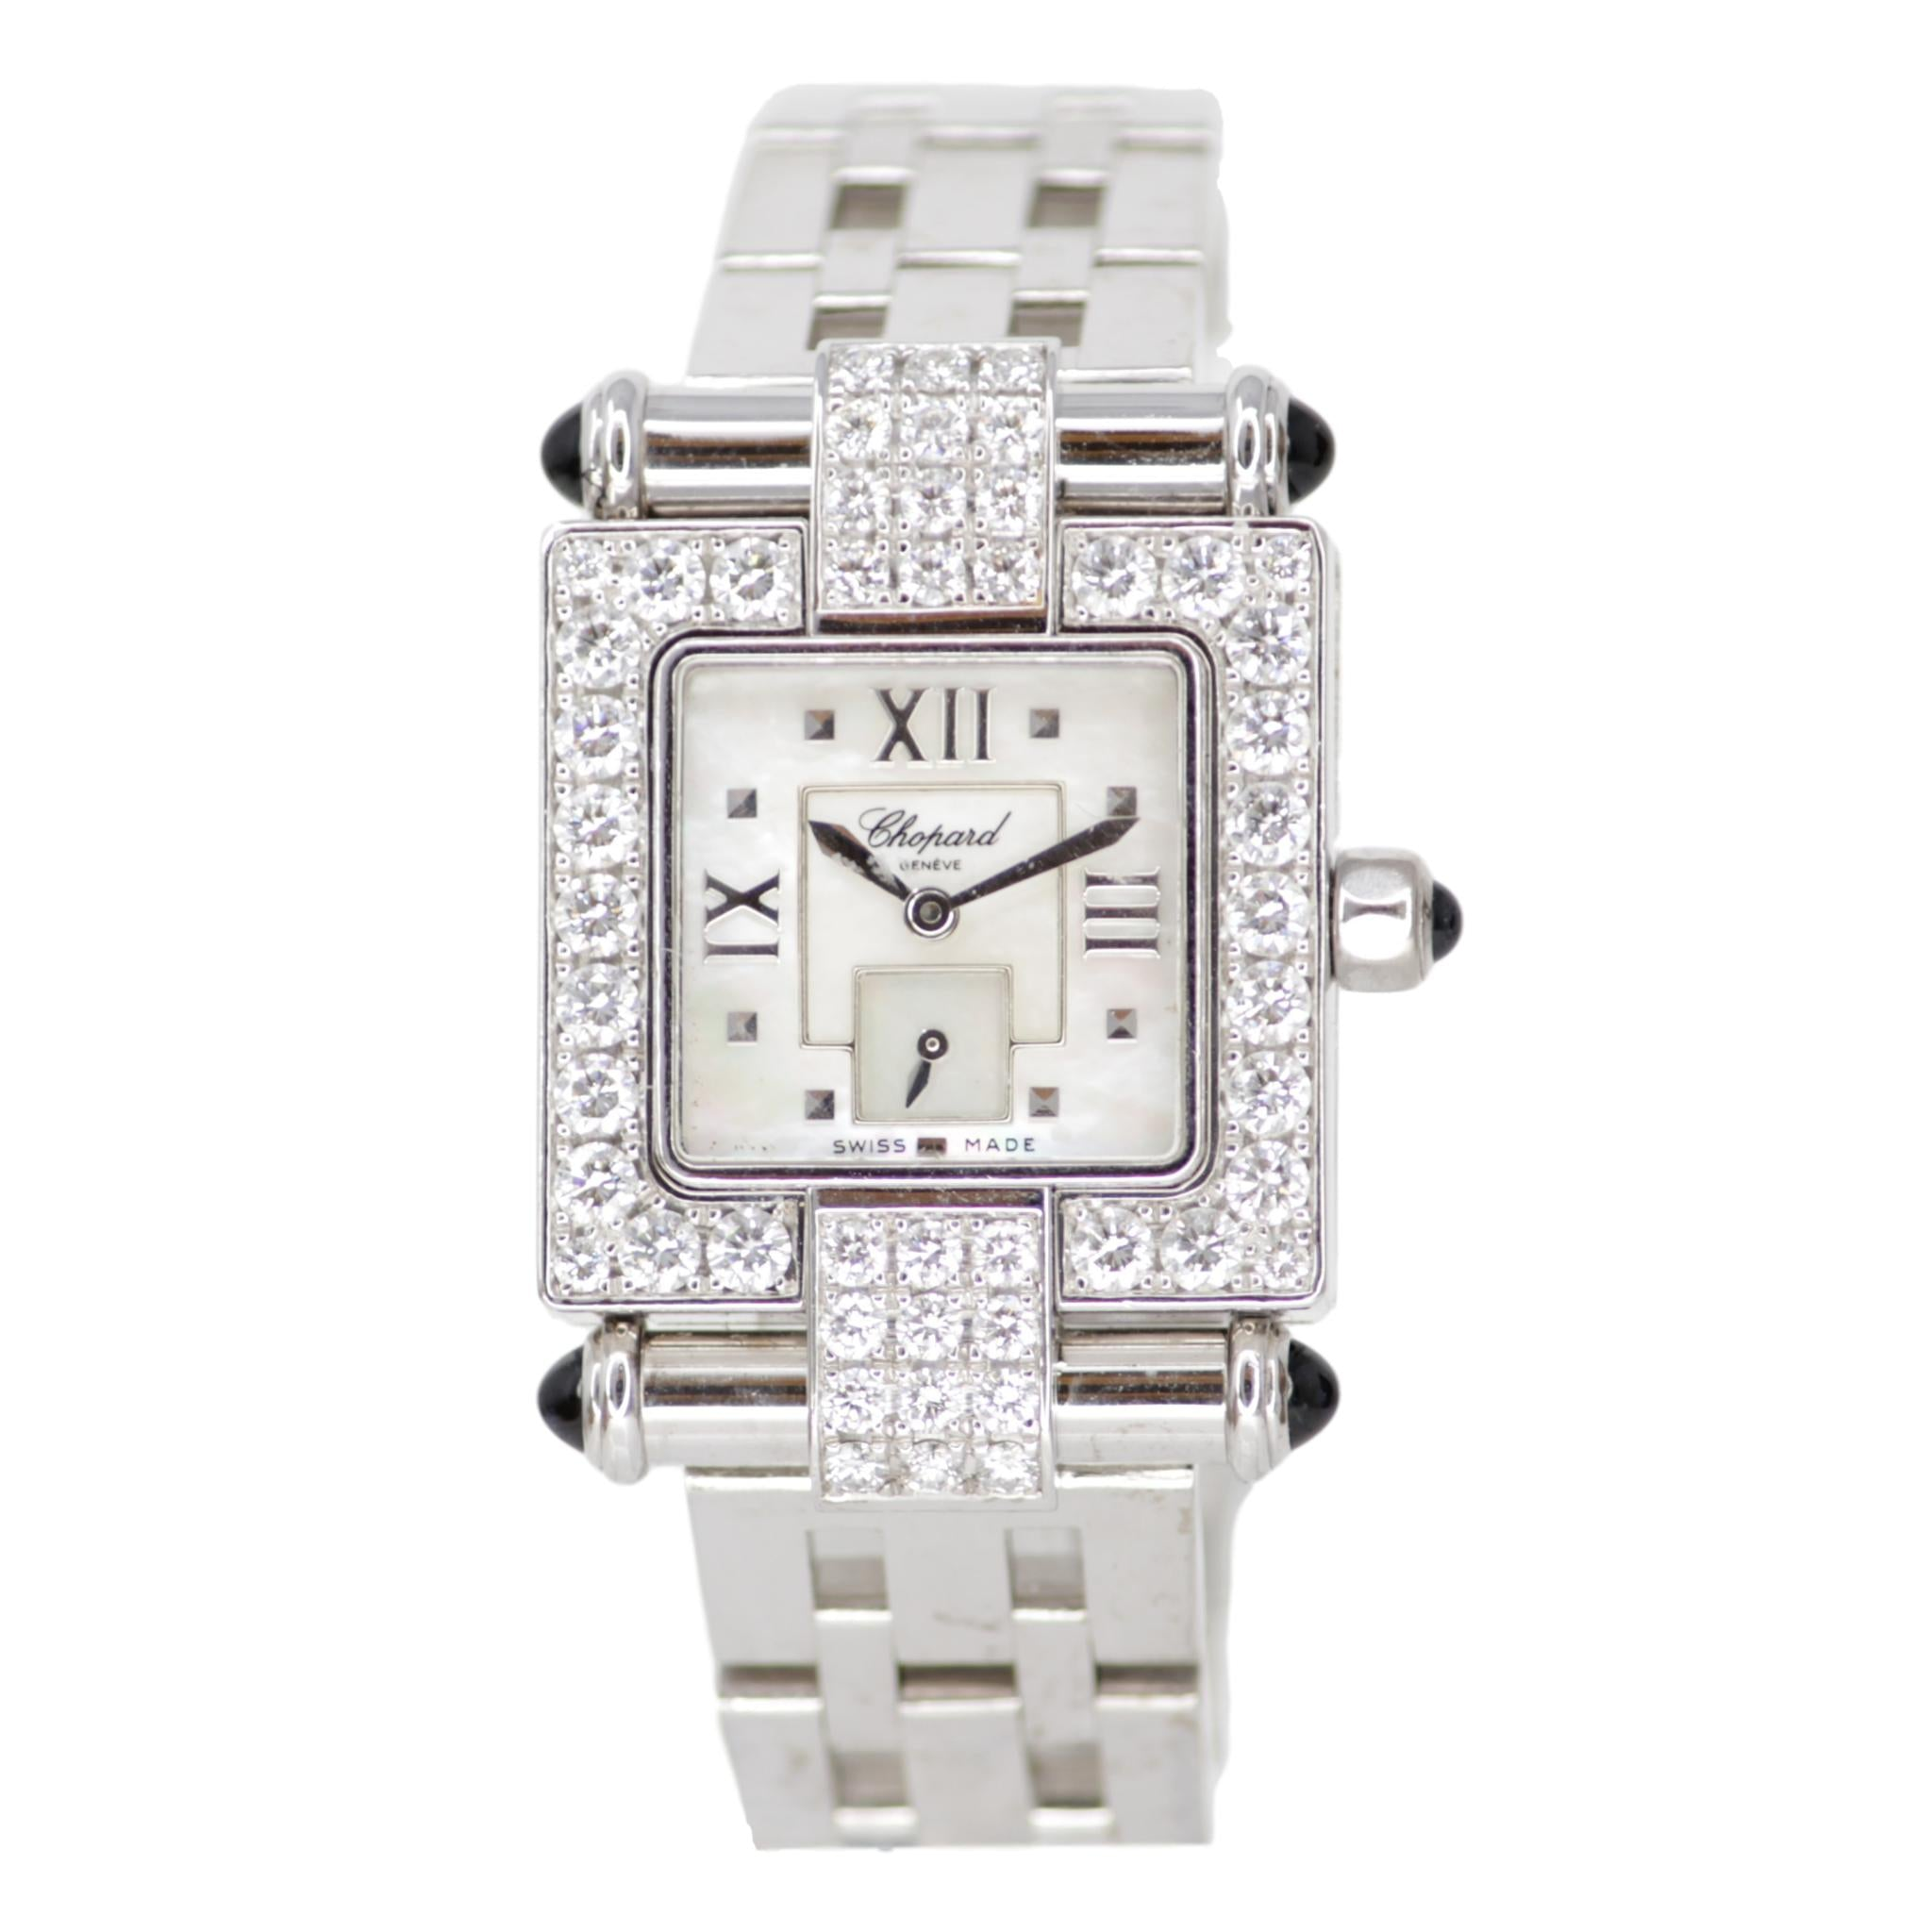 Chopard Imperiale Watch 18k White Gold with Diamond Bezel Metal Strap Square Face